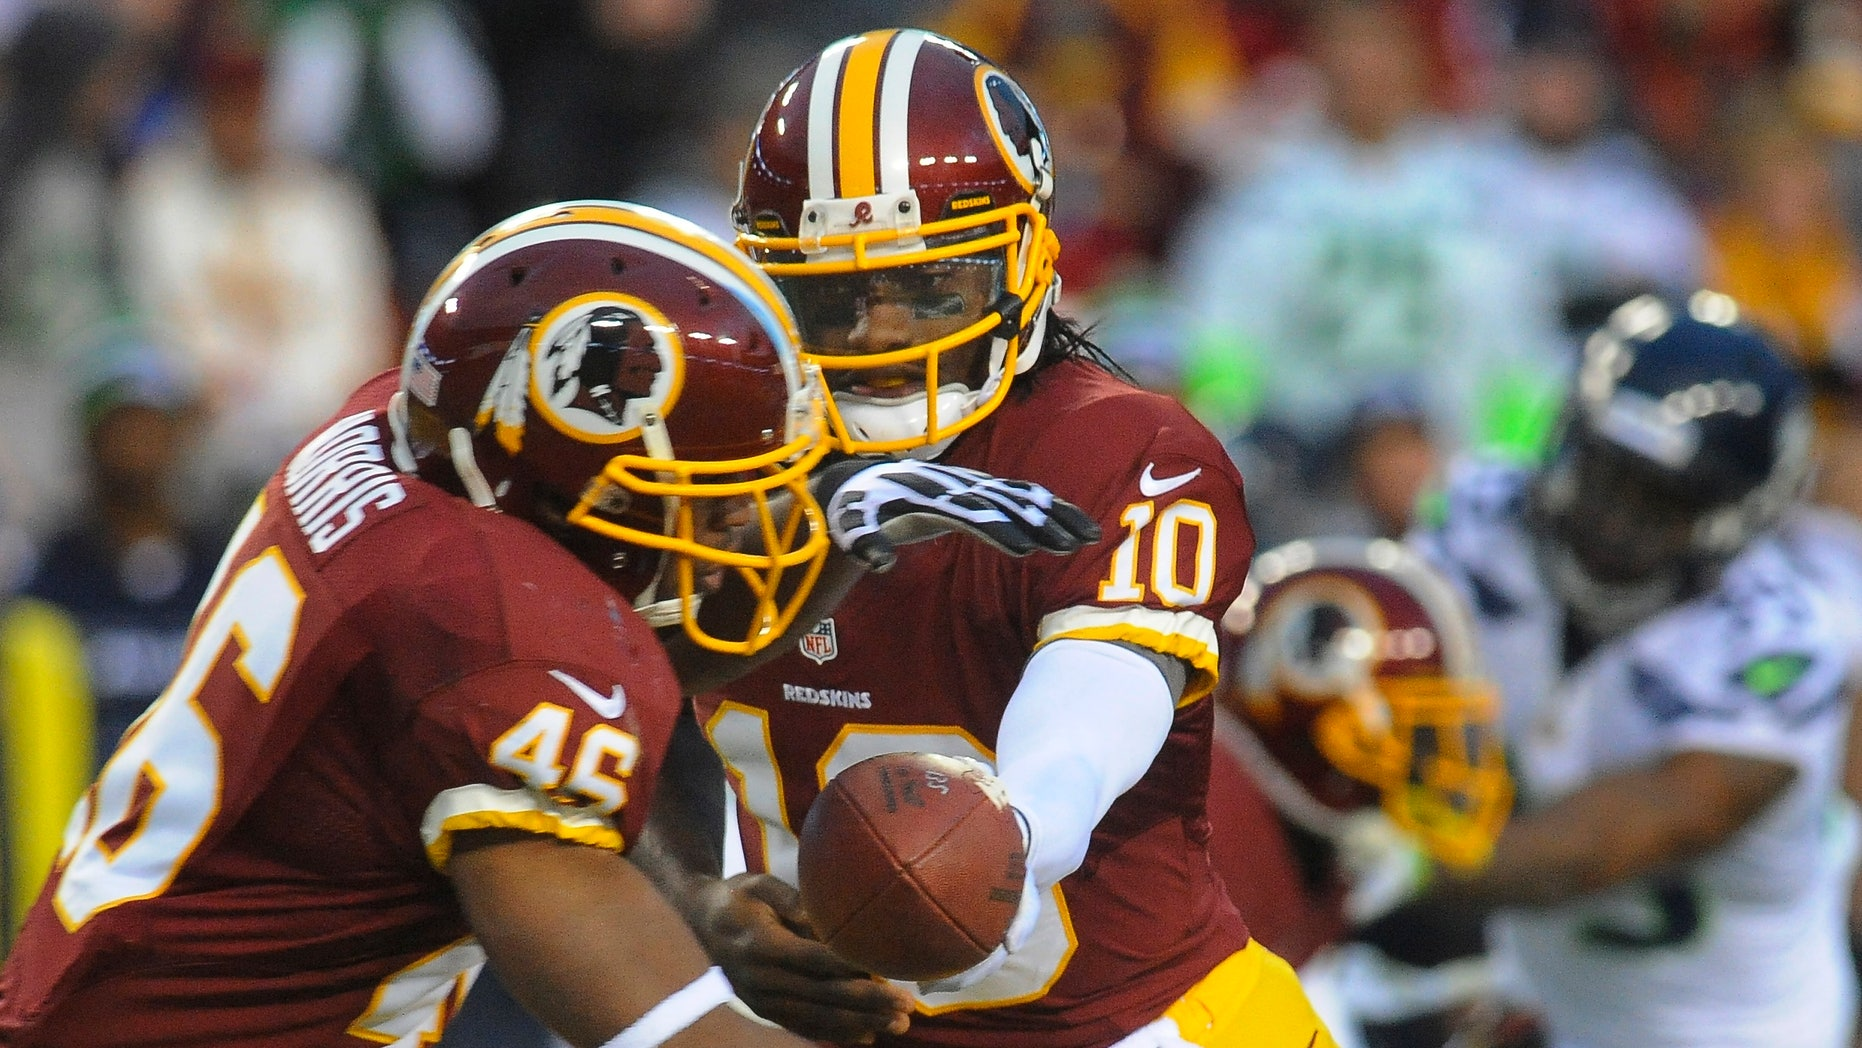 Jan. 6, 2013: Washington Redskins quarterback Robert Griffin III hands off to running back Alfred Morris during the first half of an NFL wild card playoff football game against the Seattle Seahawks in Landover, Md.